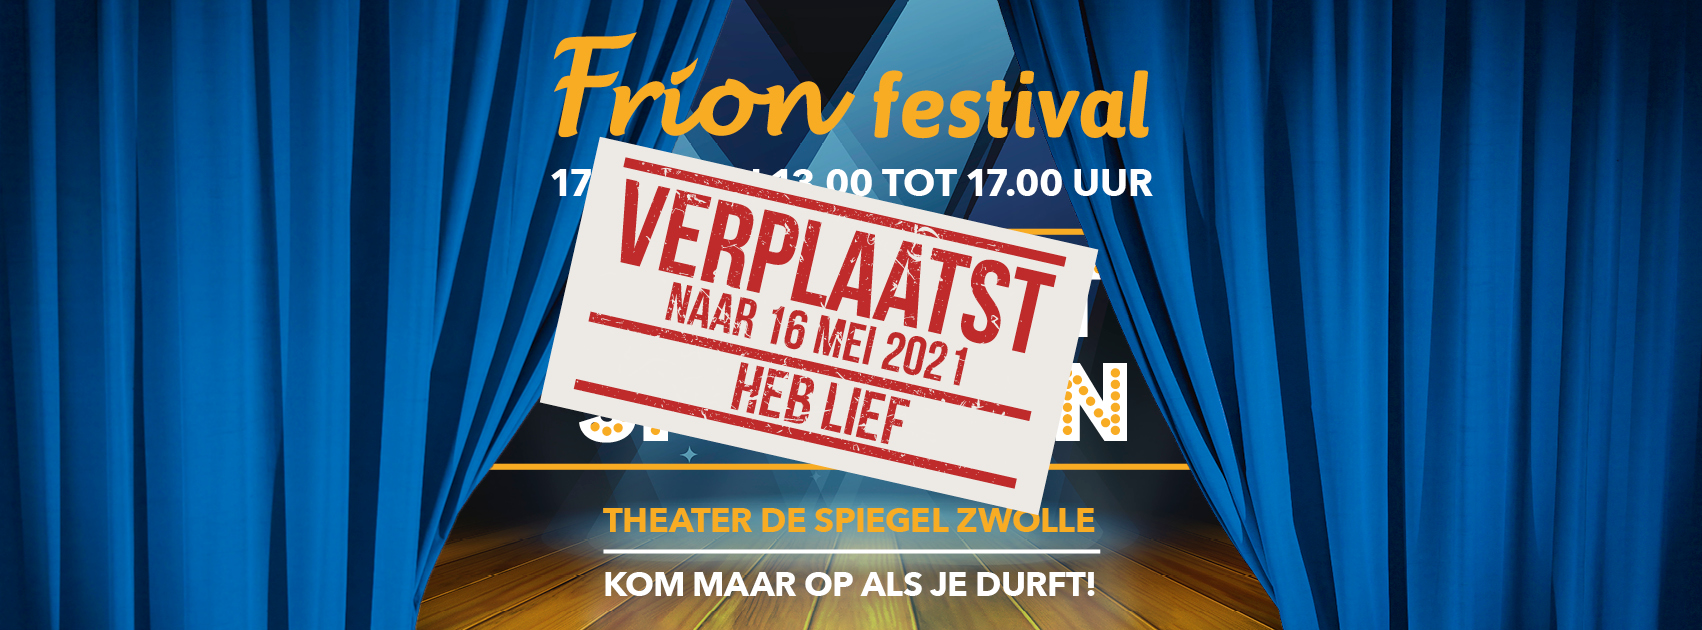 190291_VRIENDEN_VAN_FRION_FESTIVAL_2020_HEADER_WEBSITE_ZWOLSE_THEATERS_DE_SPIEGEL2